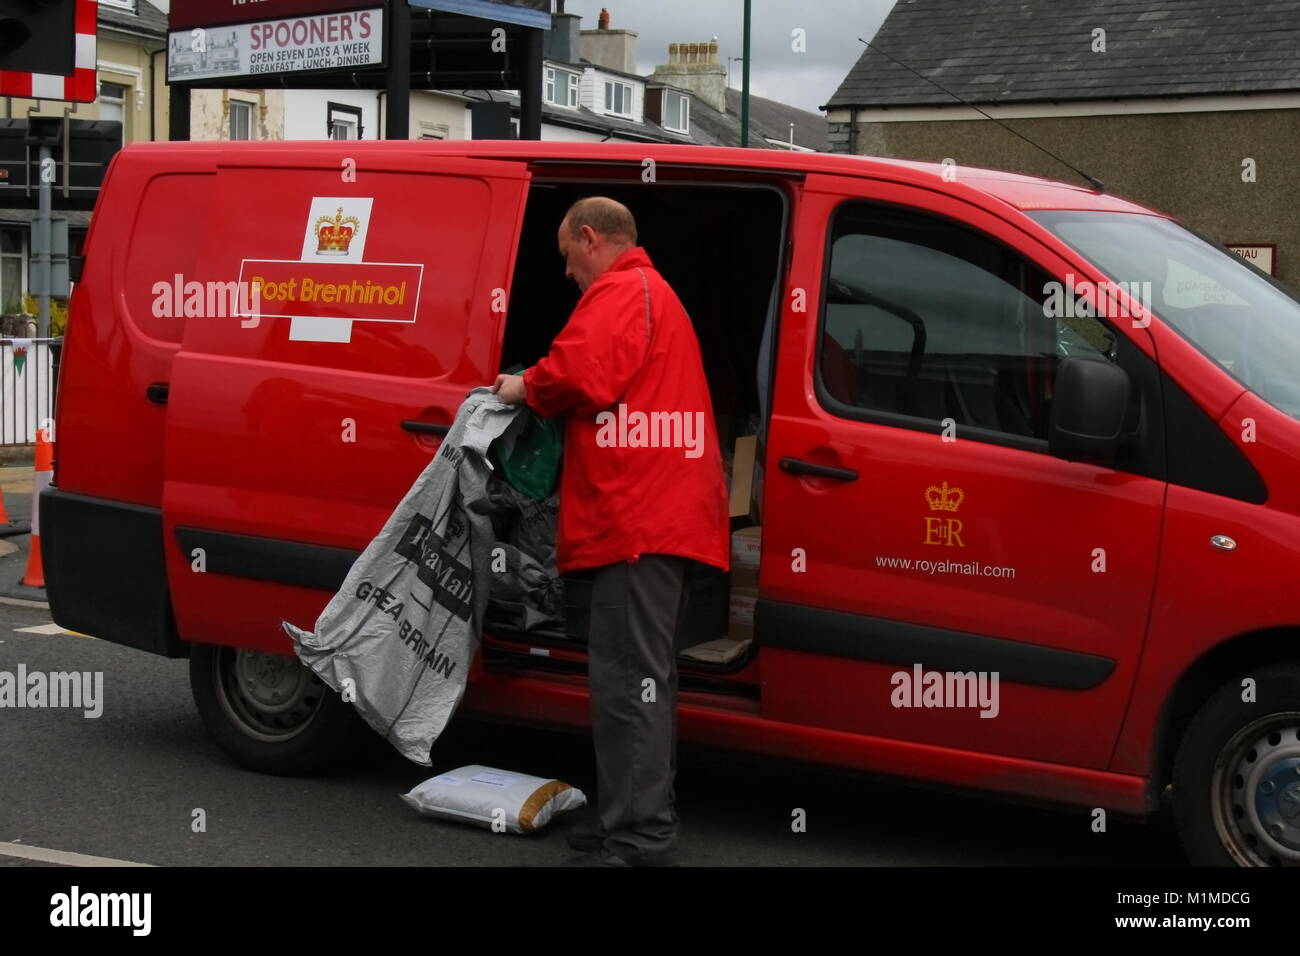 A RED PEUGEOT ROYAL MAIL DELIVERY VAN IN WELSH AND ENGLISH BILINGUAL LIVERY WITH POSTMAN EMPTYING MAIL INTO A SACK - Stock Image